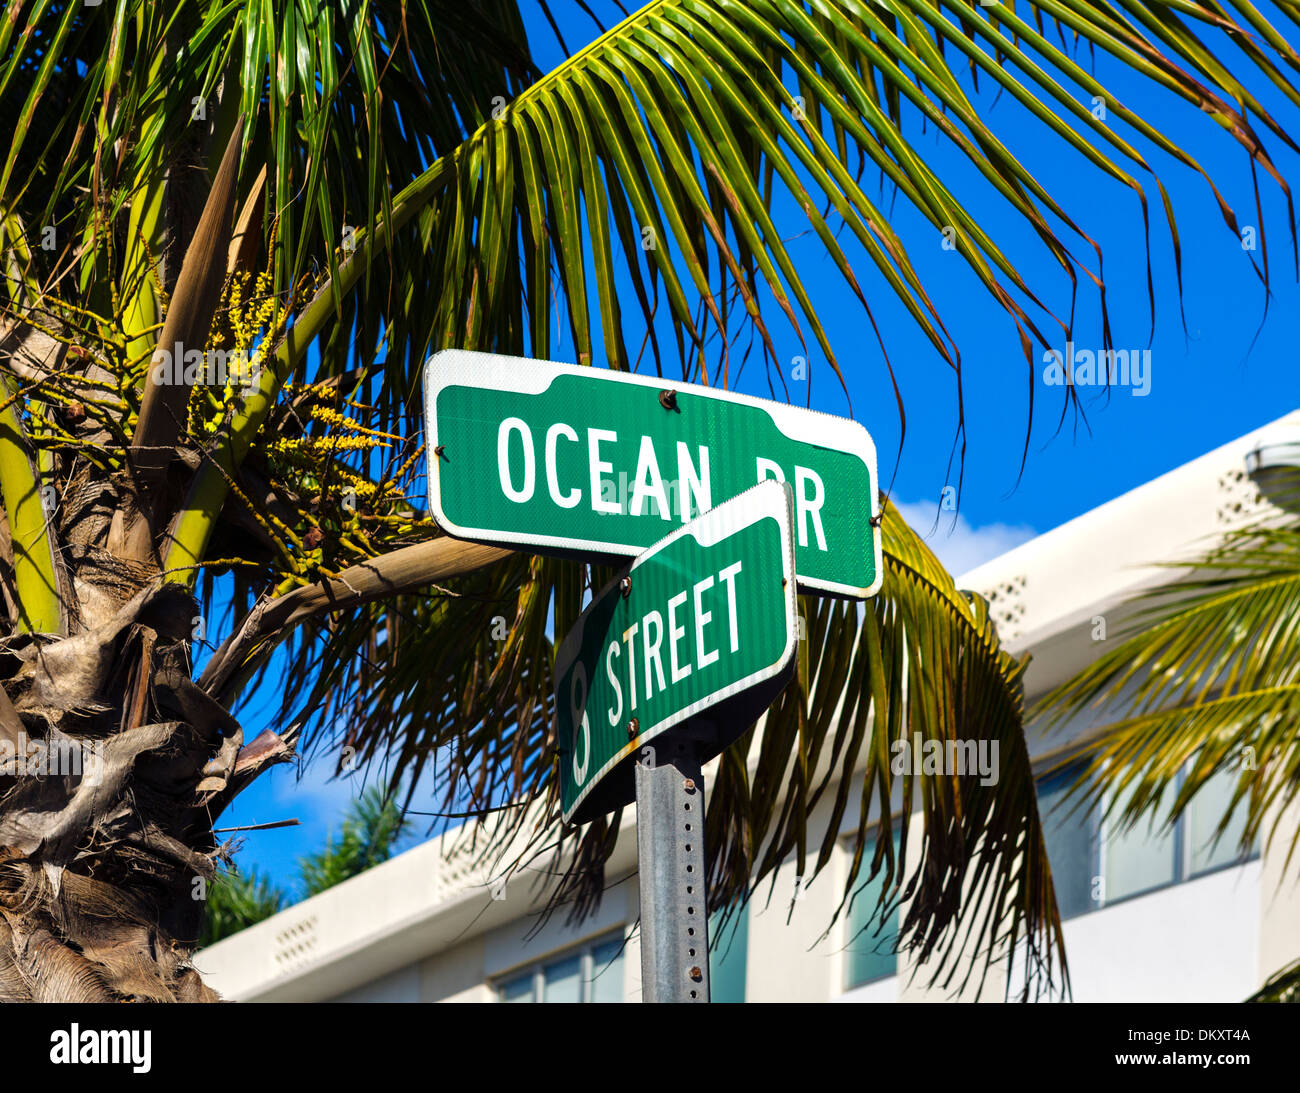 Ocean Drive street sign at the intersection with 8th Street, Art Deco District, South Beach, Miami Beach, Florida, USA - Stock Image